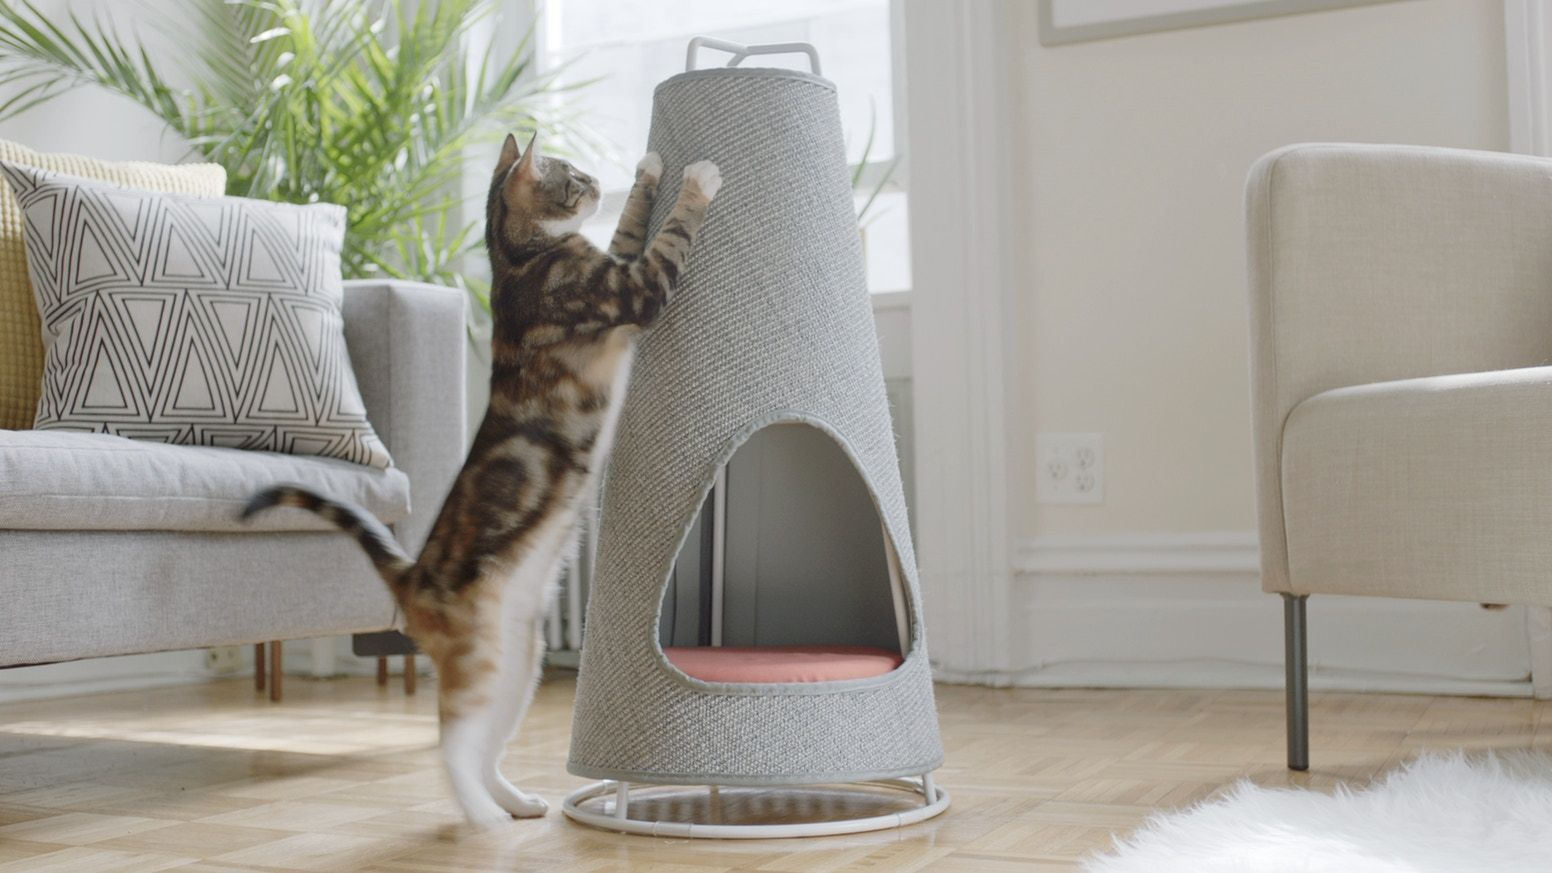 Introducing The Cone A New Modern Scratching Post And Nap Space